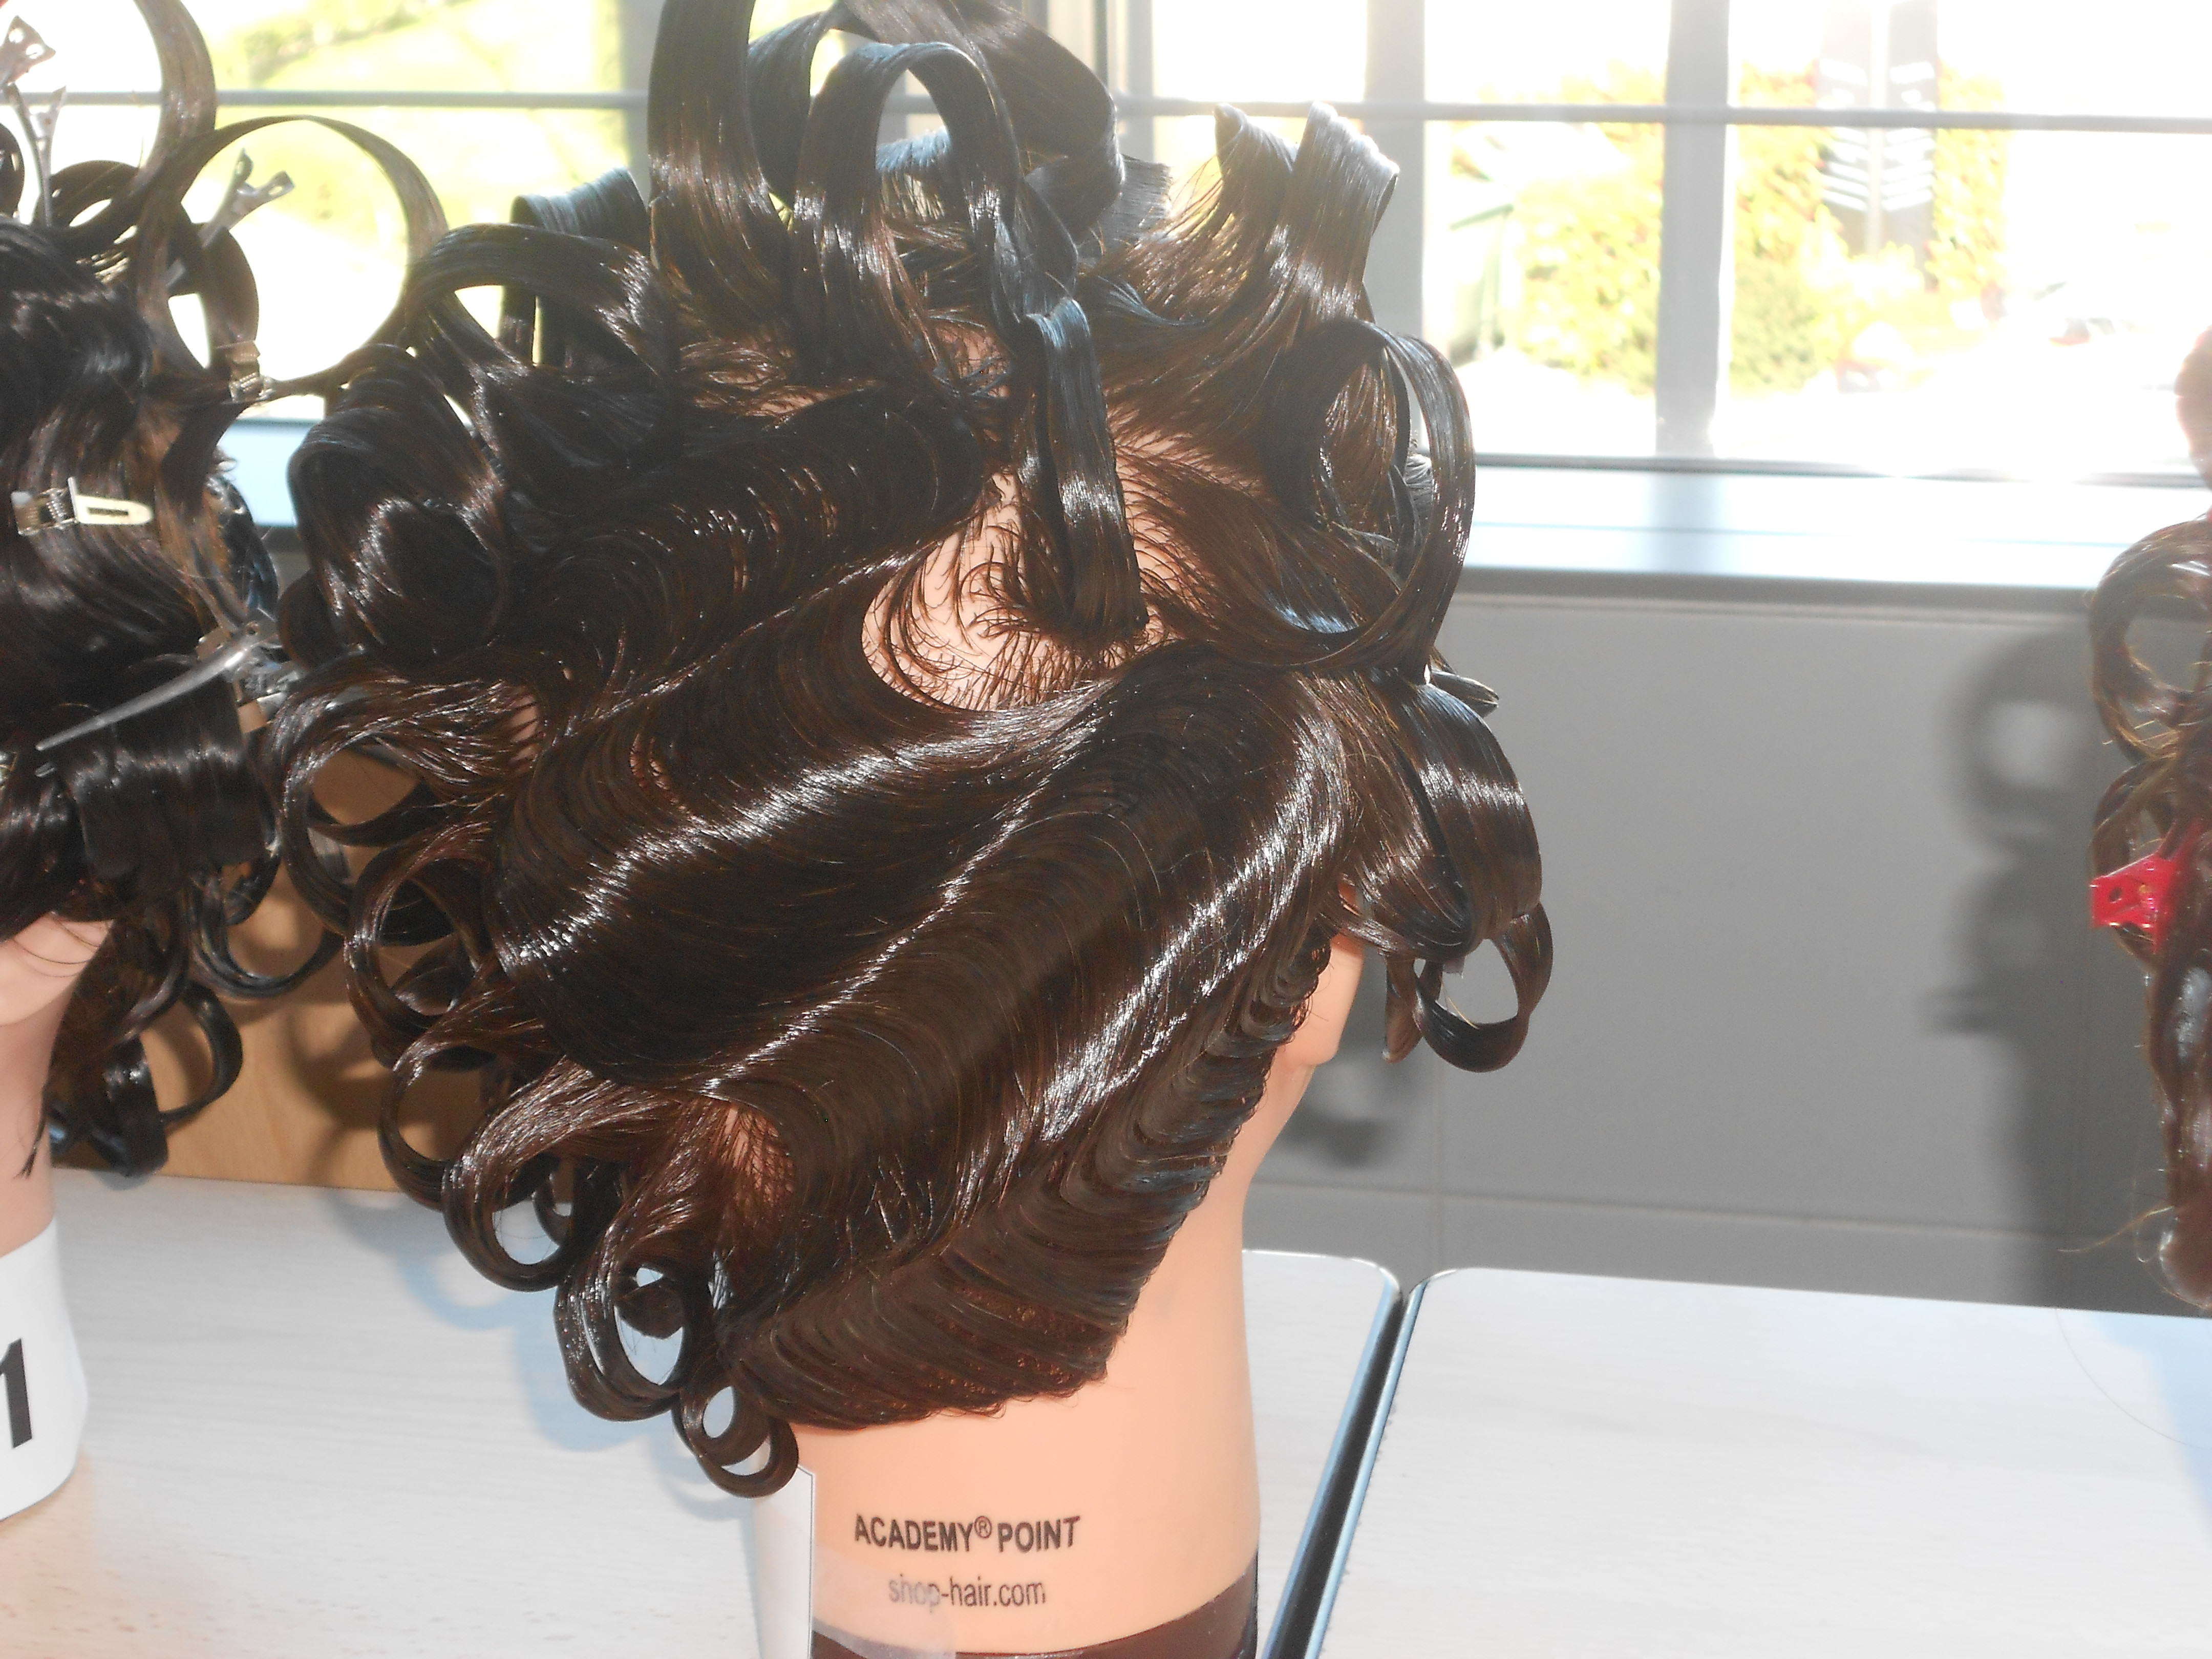 concours-maf-coiffure